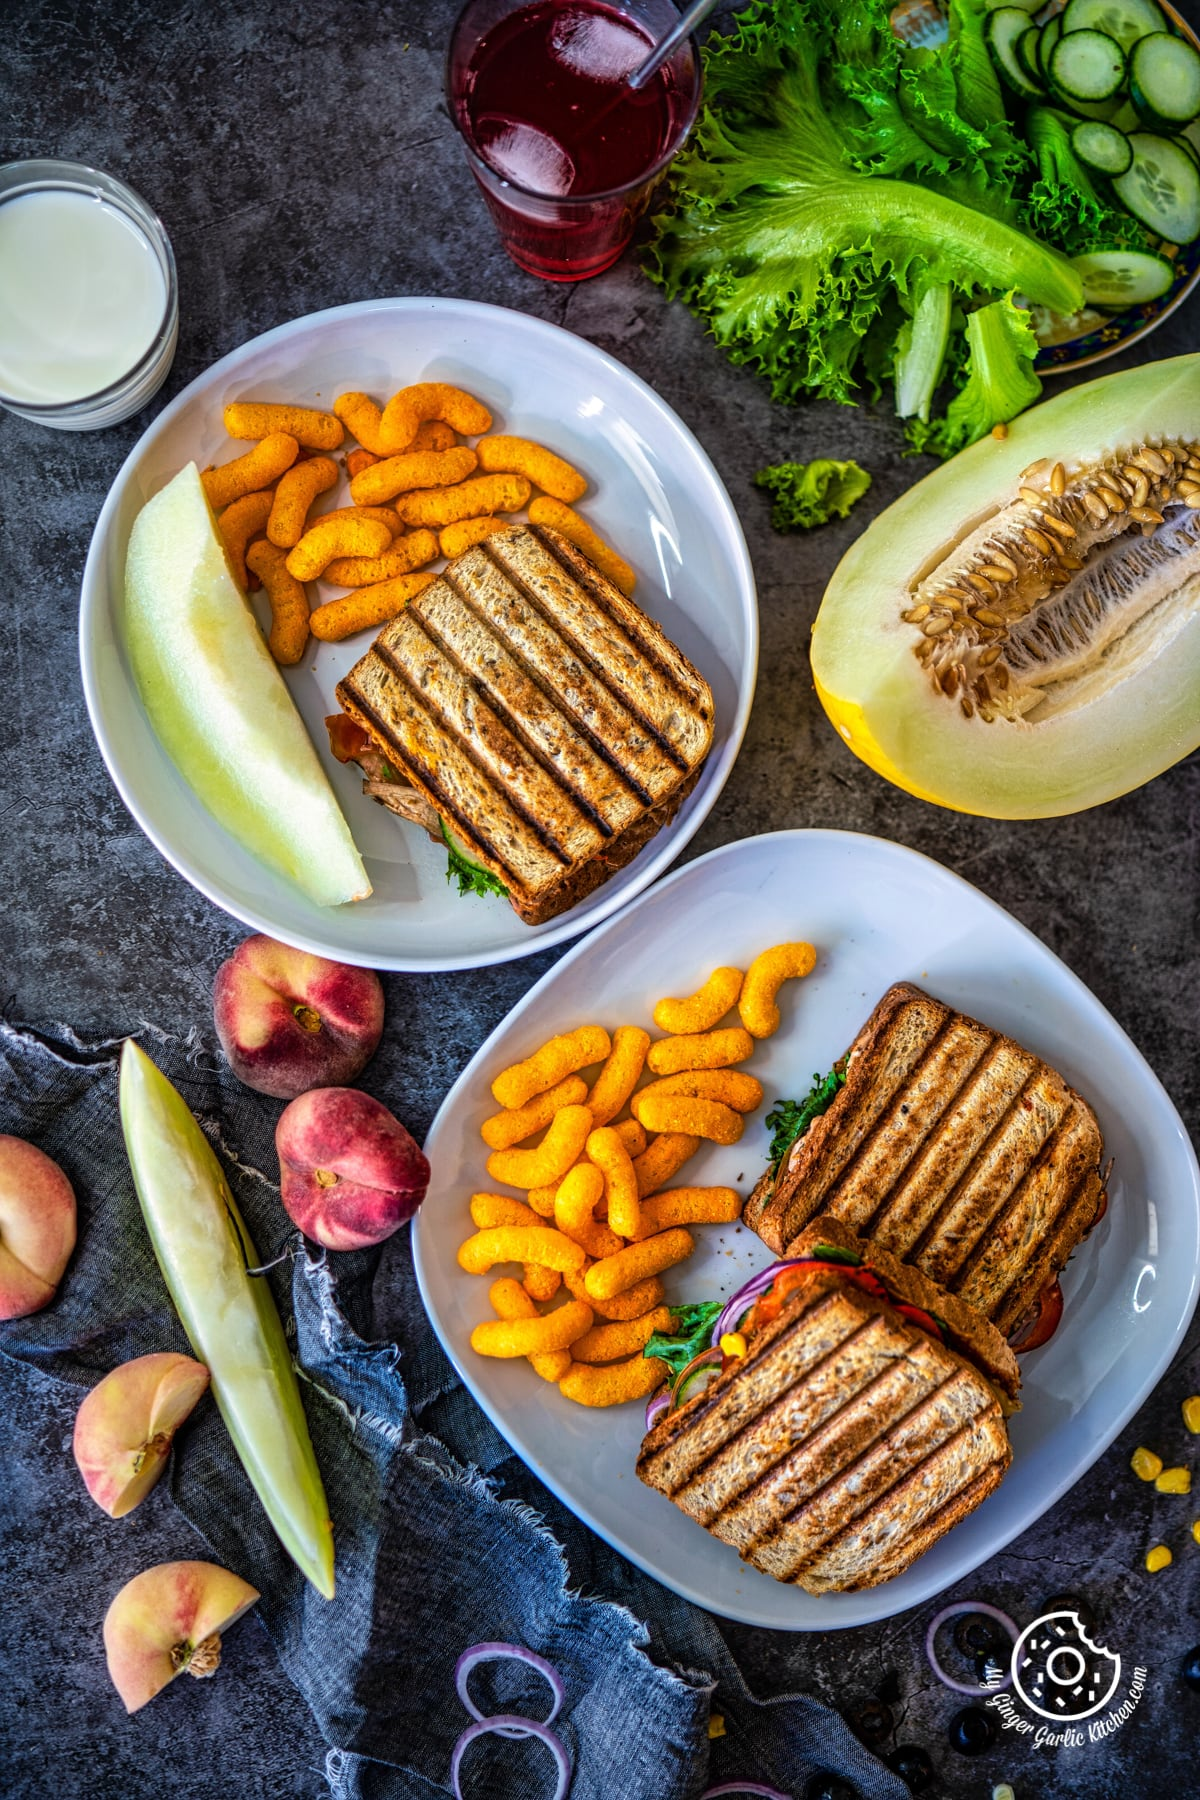 overhead shot ocf peanut butter and veggie grilled cheese sandwiches along with melon and cheese puffs